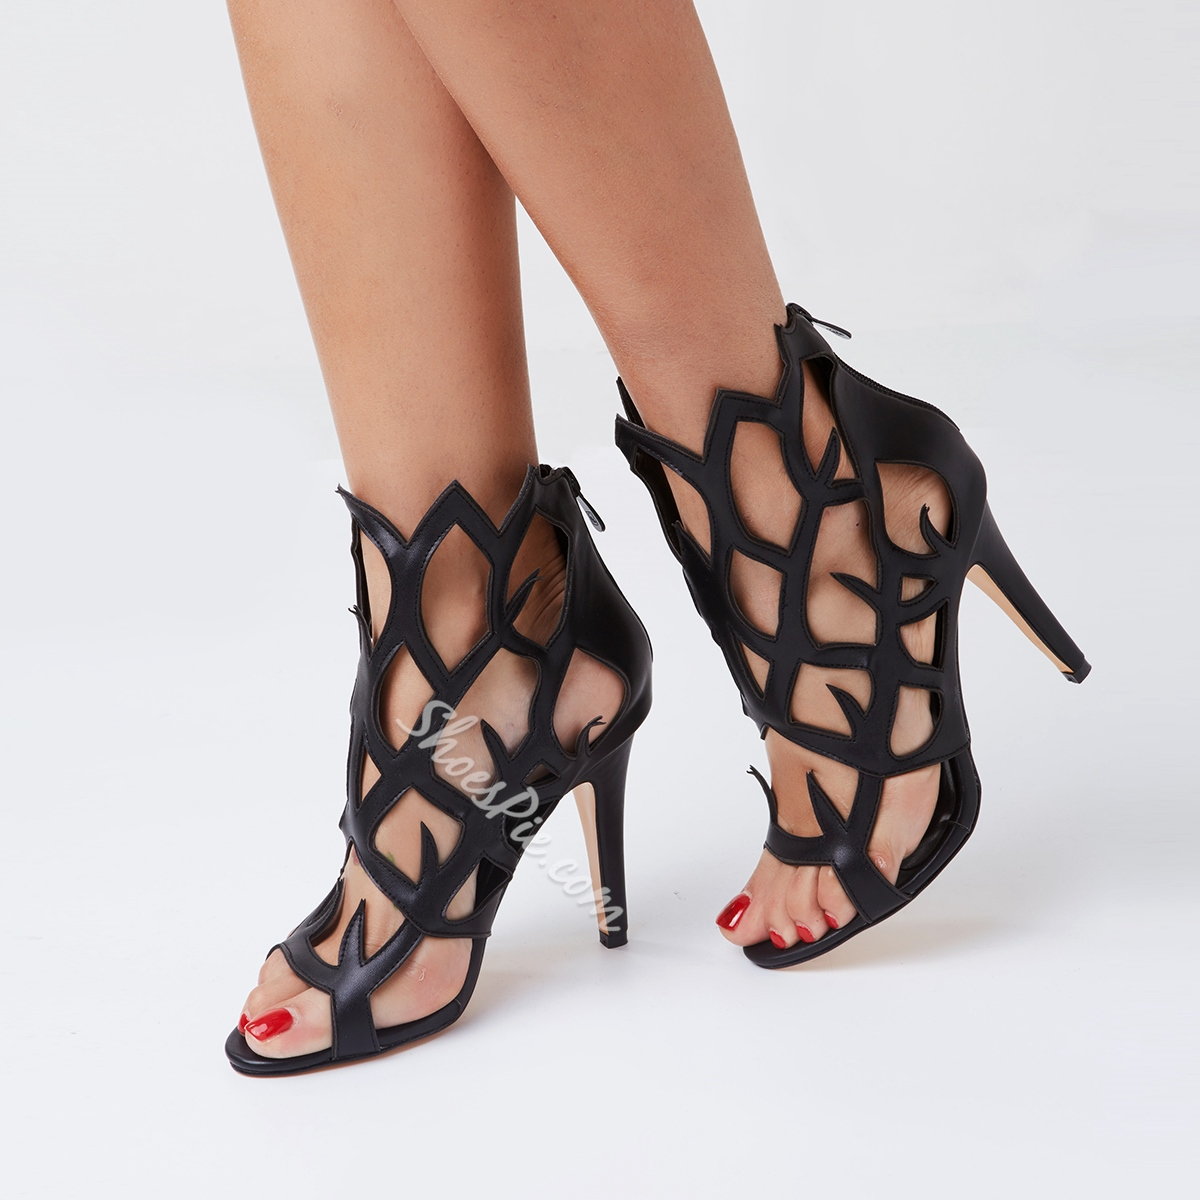 Irresistible Coppy Leather Cut-Outs Dress Sandals